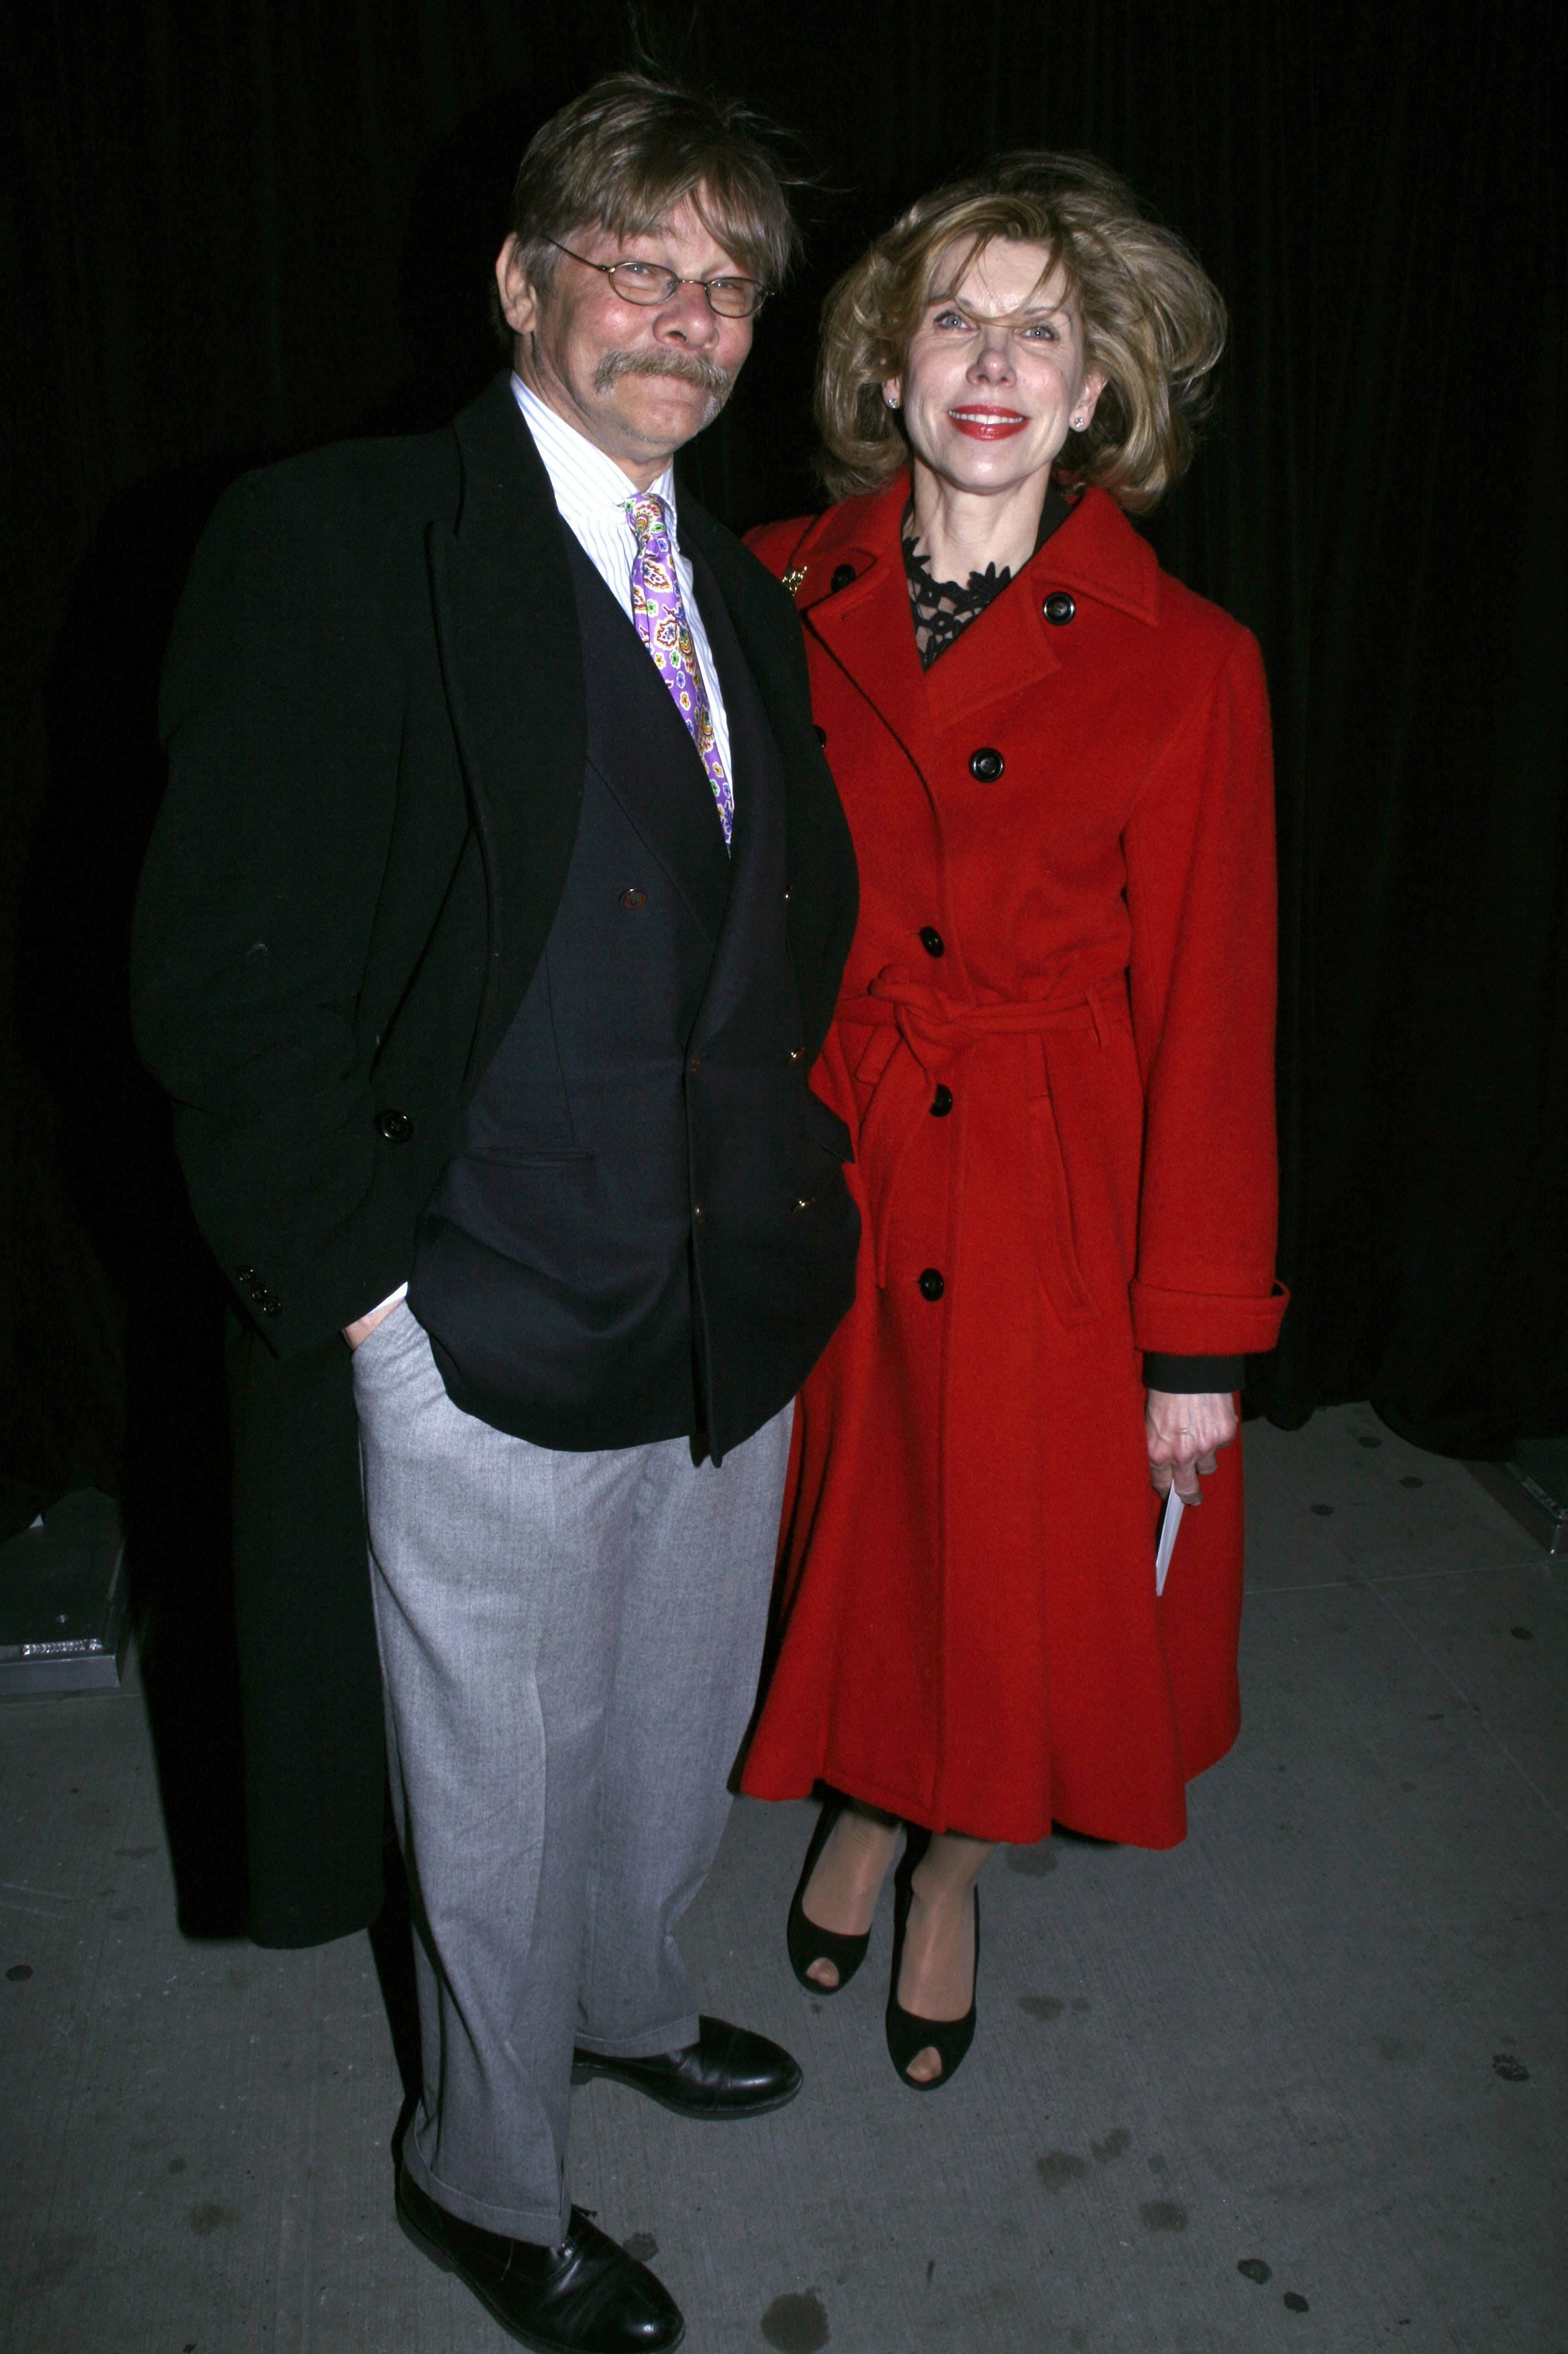 Christine Baranski and Matthew Cowles in New York City. on March 29, 2007 | Source: Getty Images